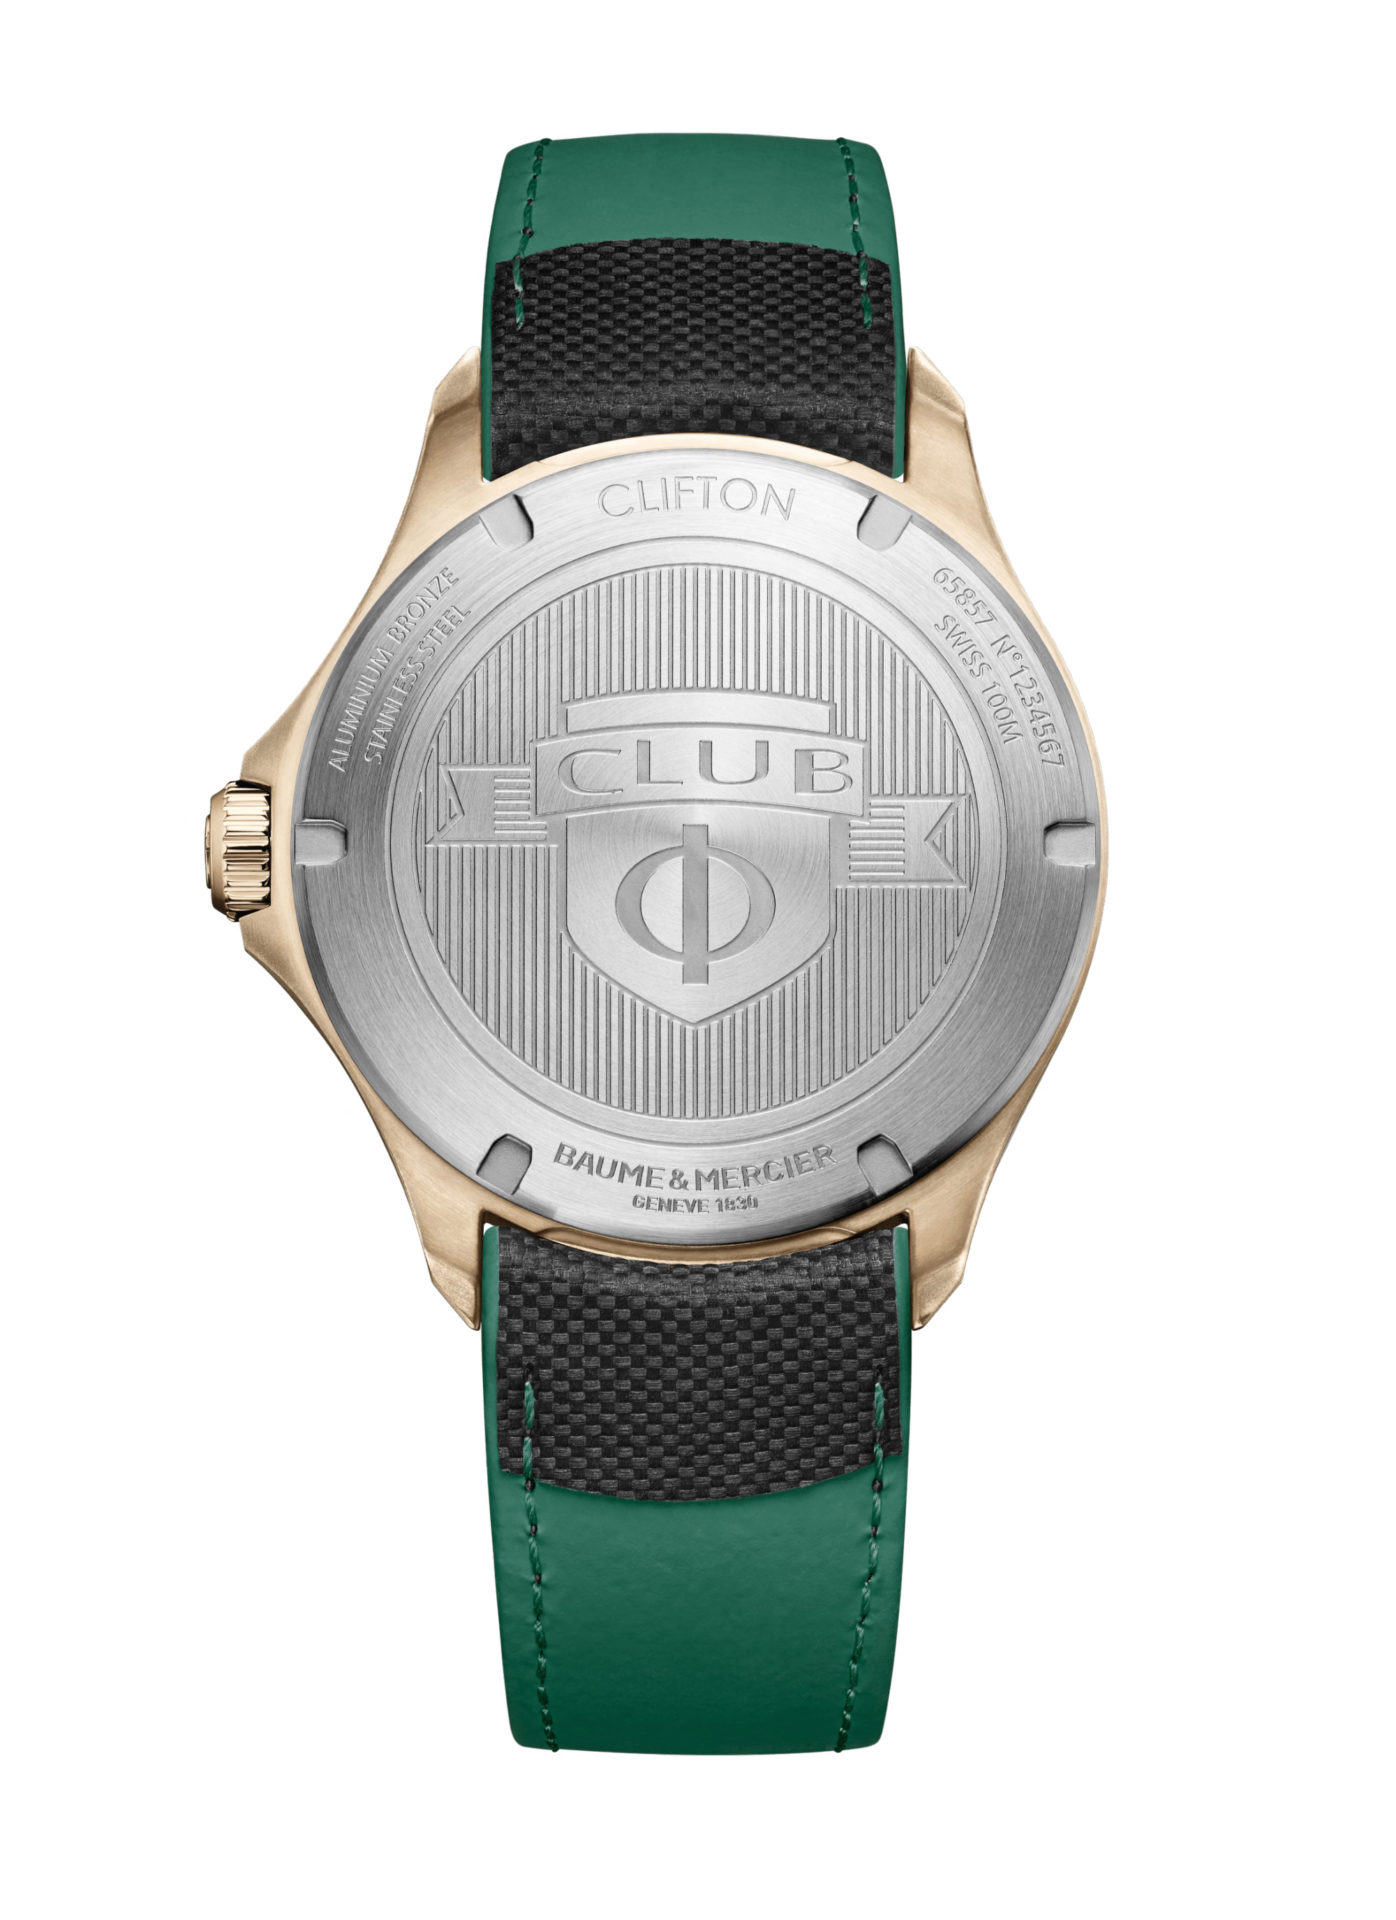 Baume-&-Mercier-Clifton-Club-10503*-Hall-of-Time